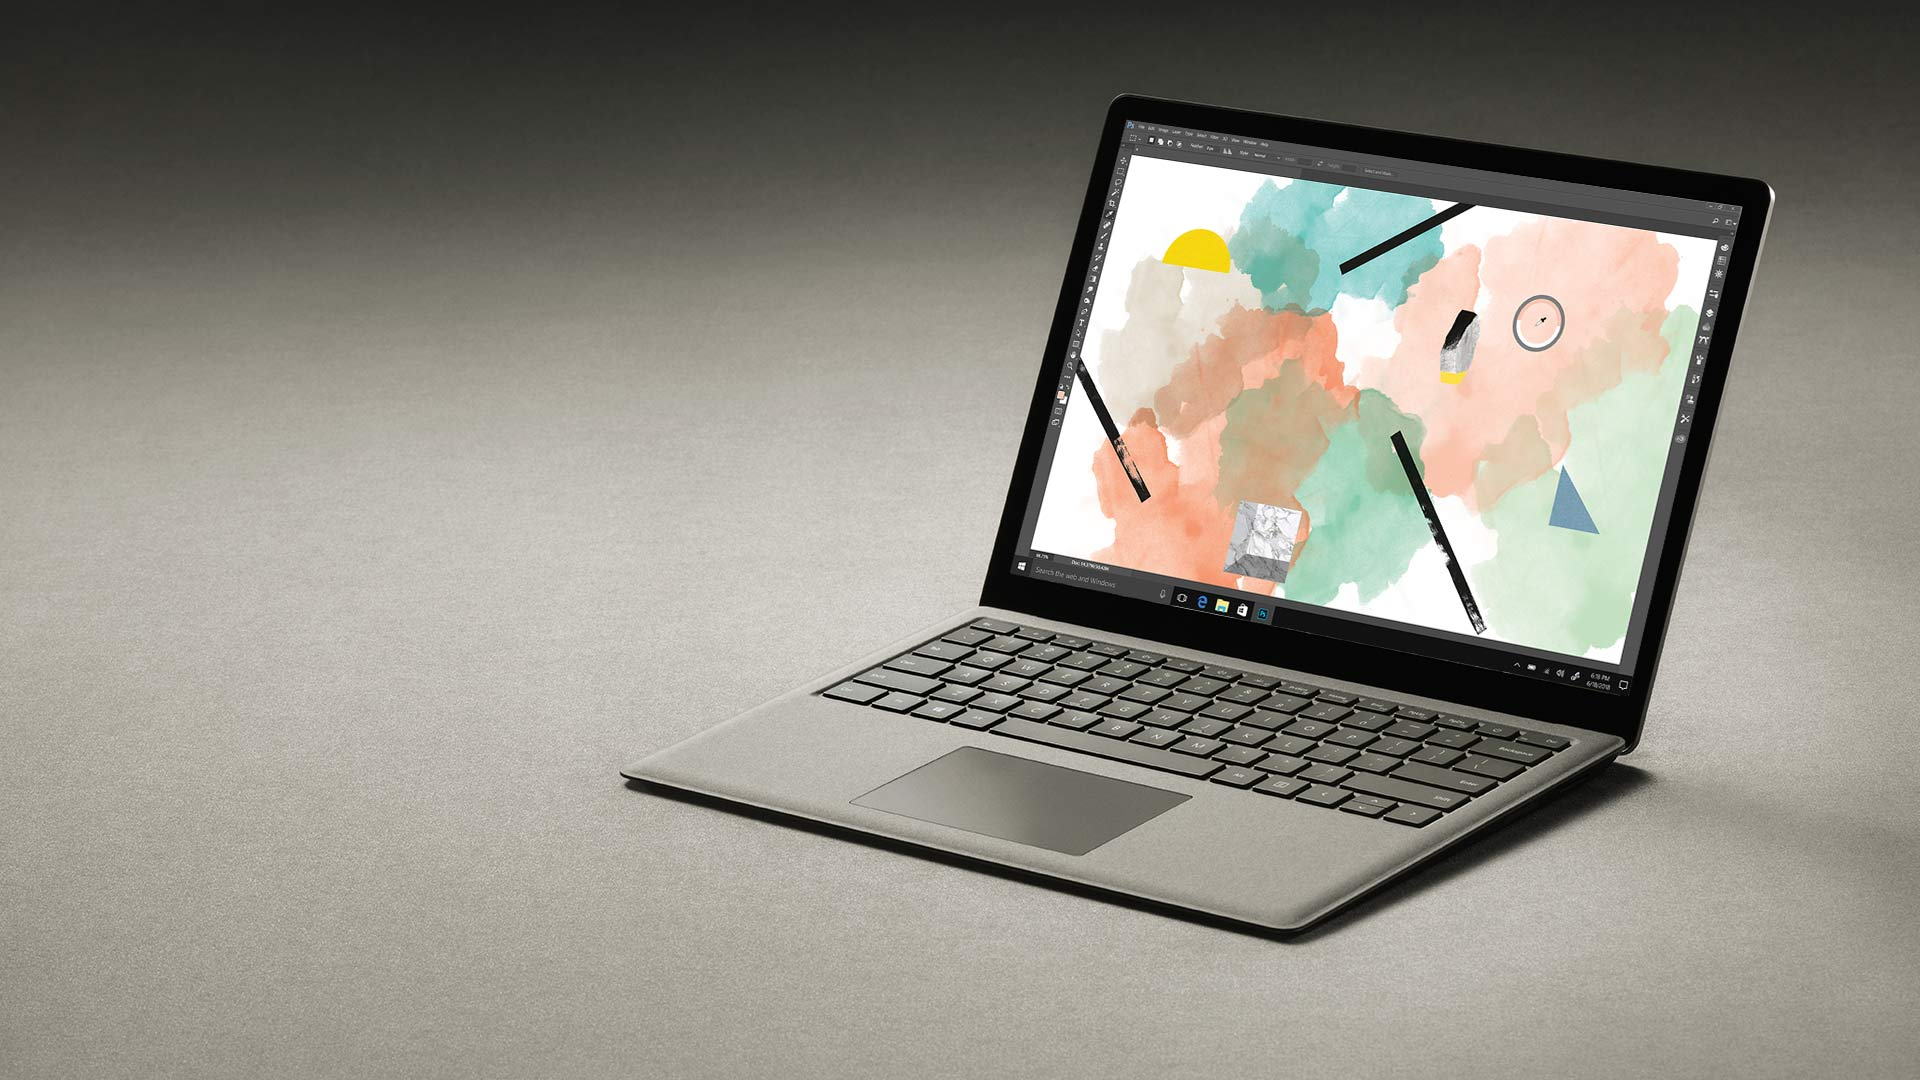 Gold Surface Laptop with Adobe Photoshop screen.